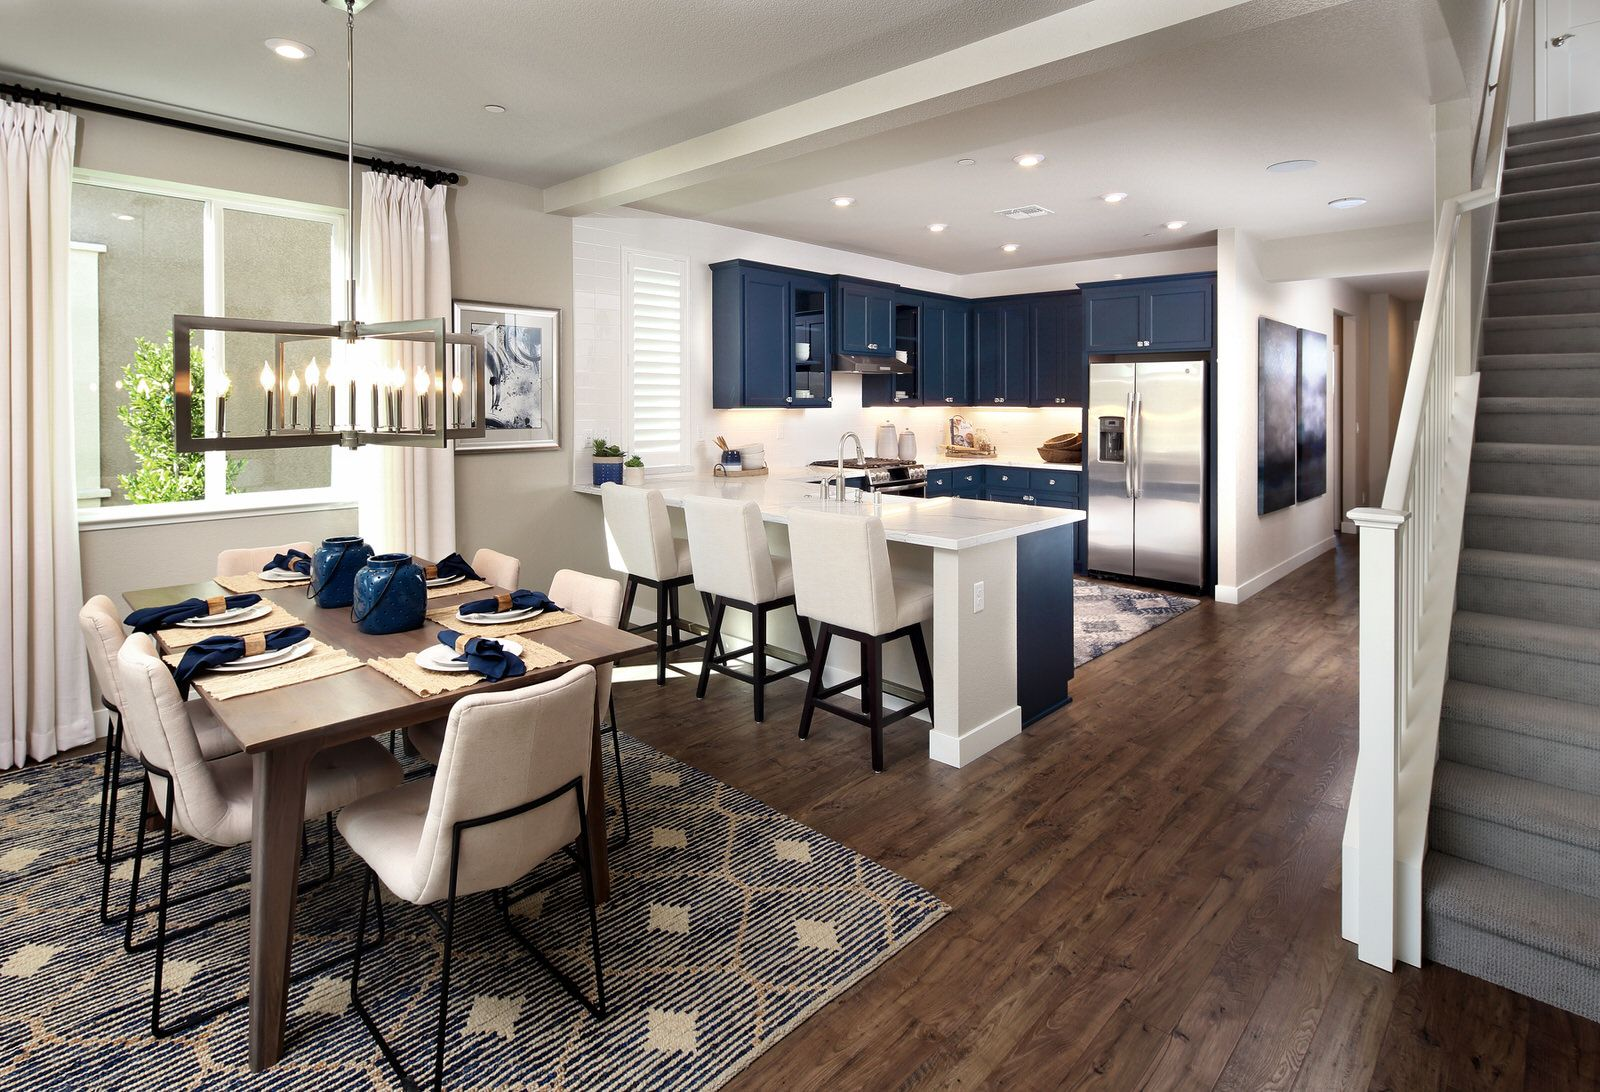 Kitchen featured in the Plan 2 Indigo Plan By Taylor Morrison in Sacramento, CA